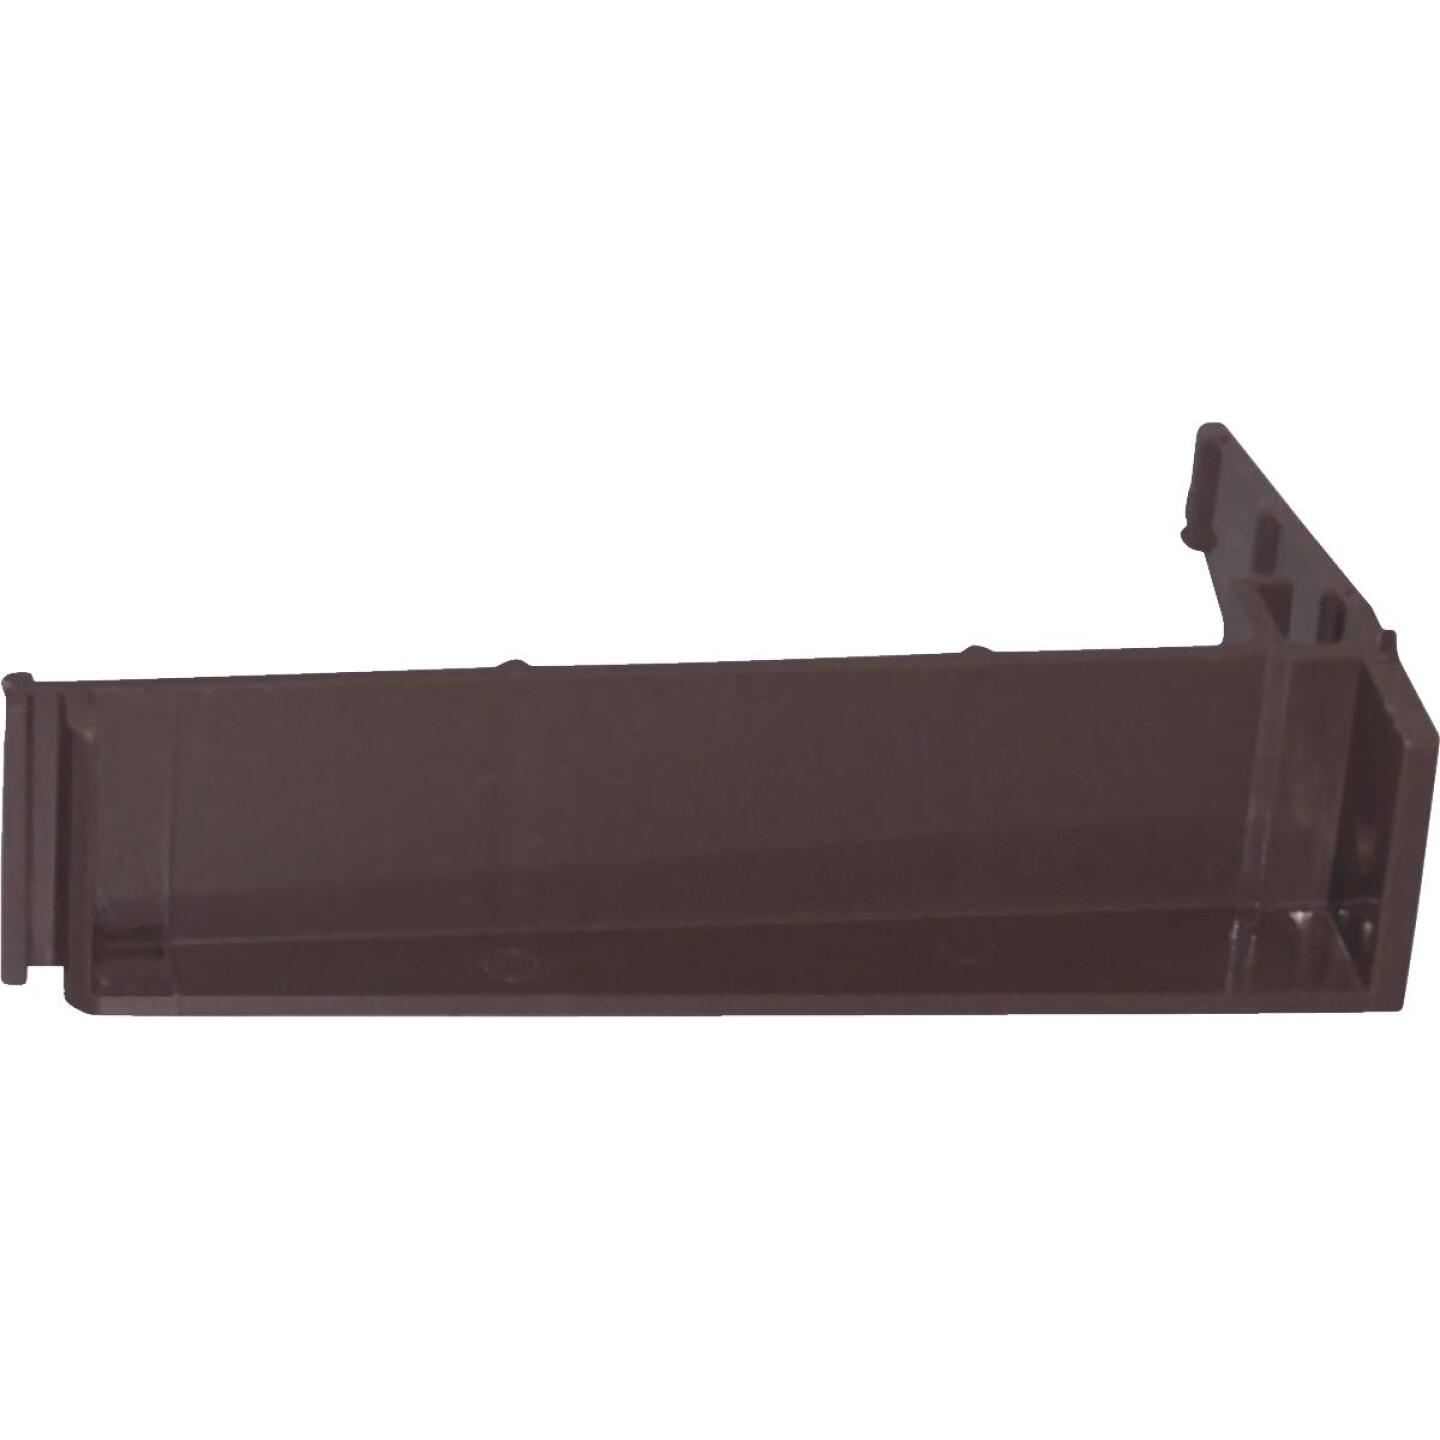 Repla K Vinyl Brown Gutter Hanger Bracket Image 1